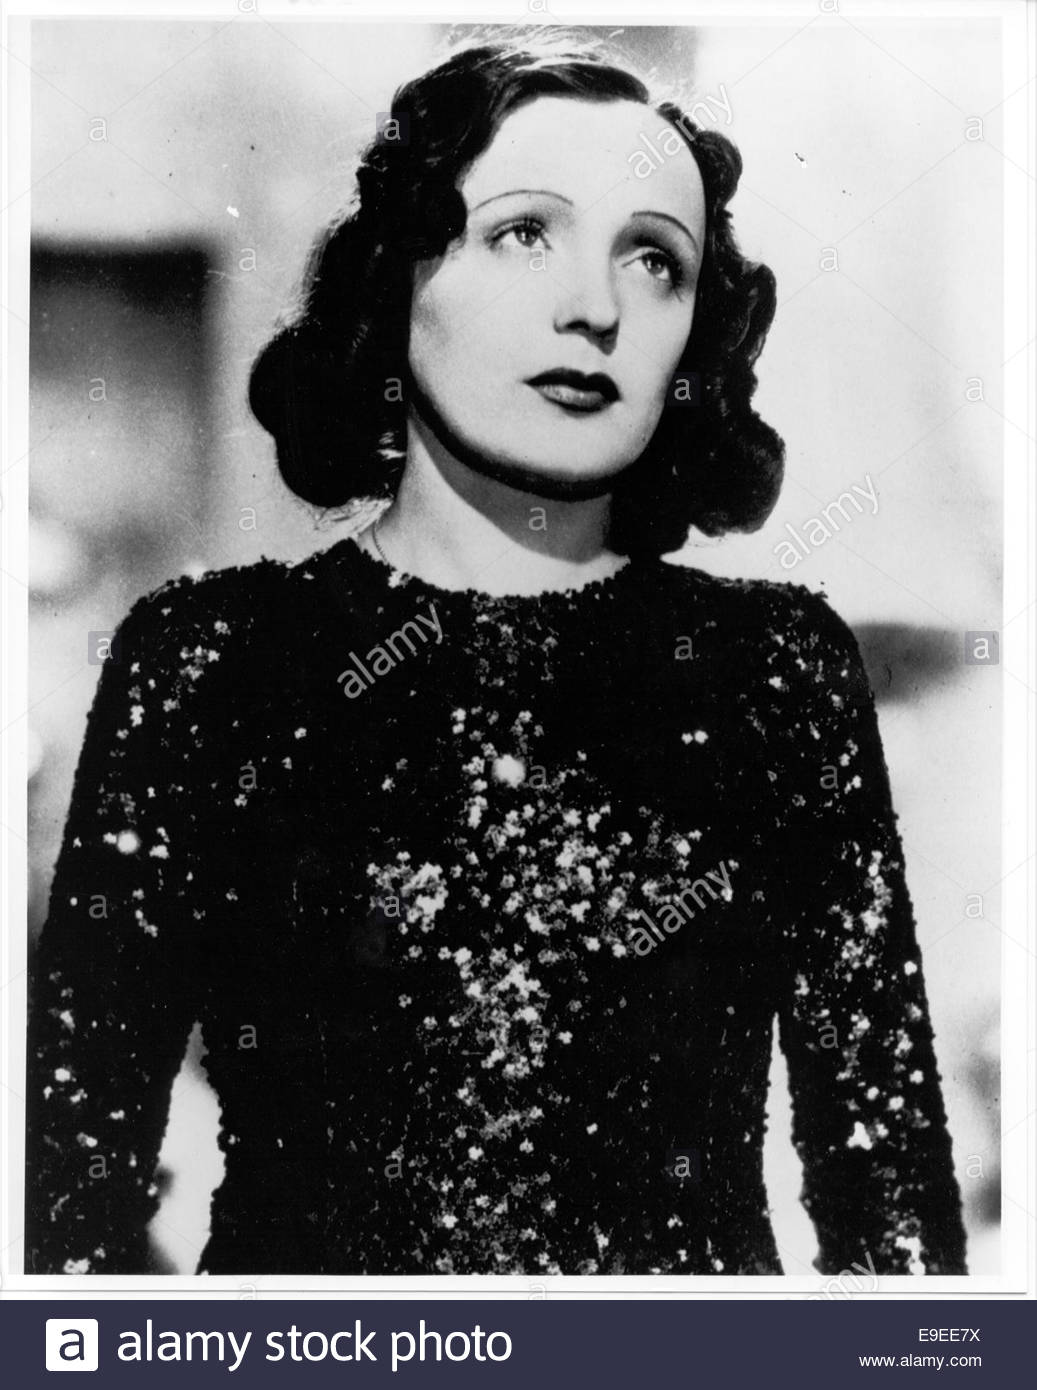 EDITH PIAF, circa 1940s. Courtesy Granamour Weems Collection. - Stock Image